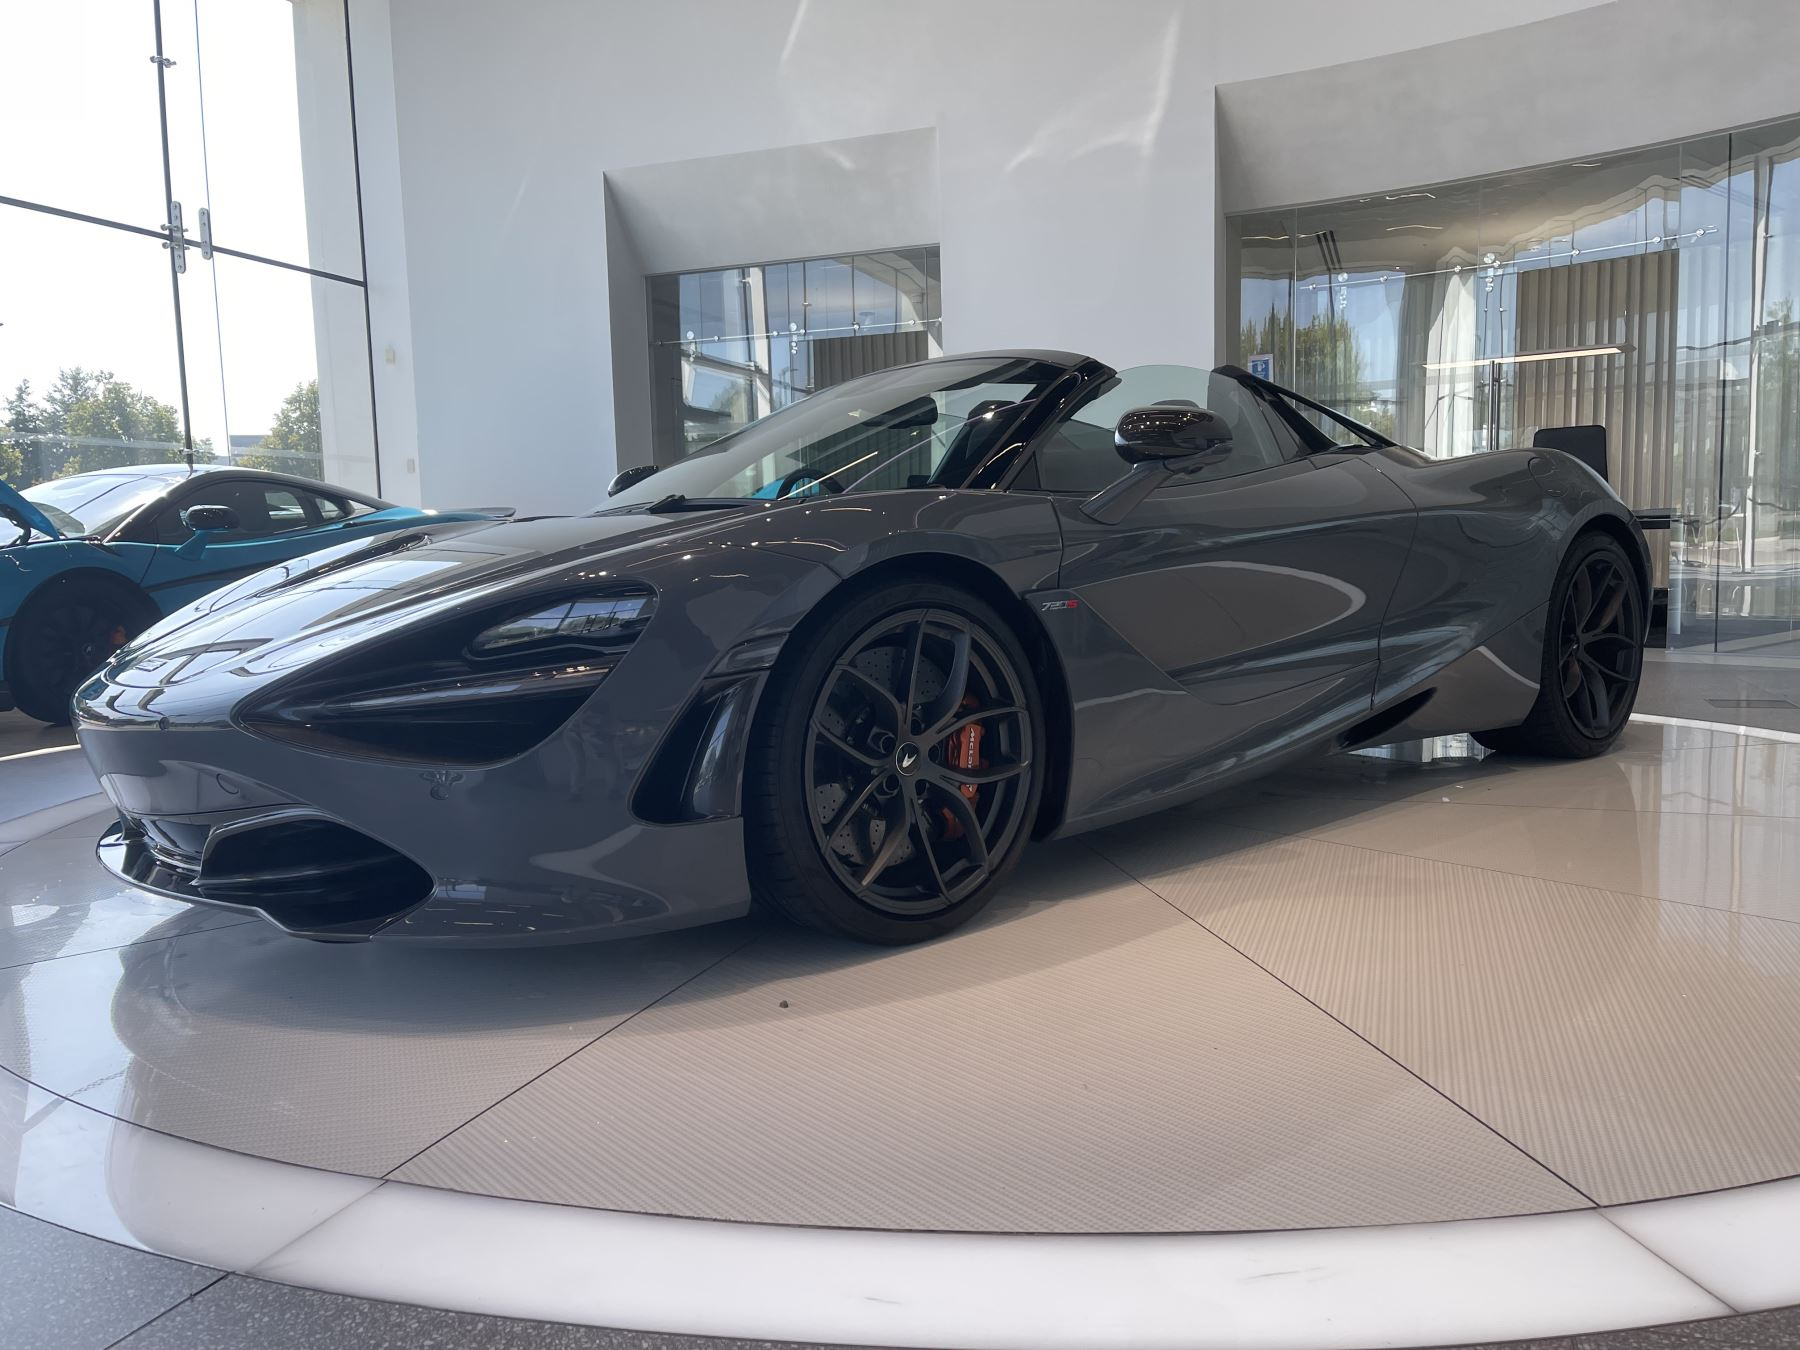 McLaren 720S Spider V8 2 DR PERFORMANCE VERY RARE COLOUR AND FULL CAR PPF image 2